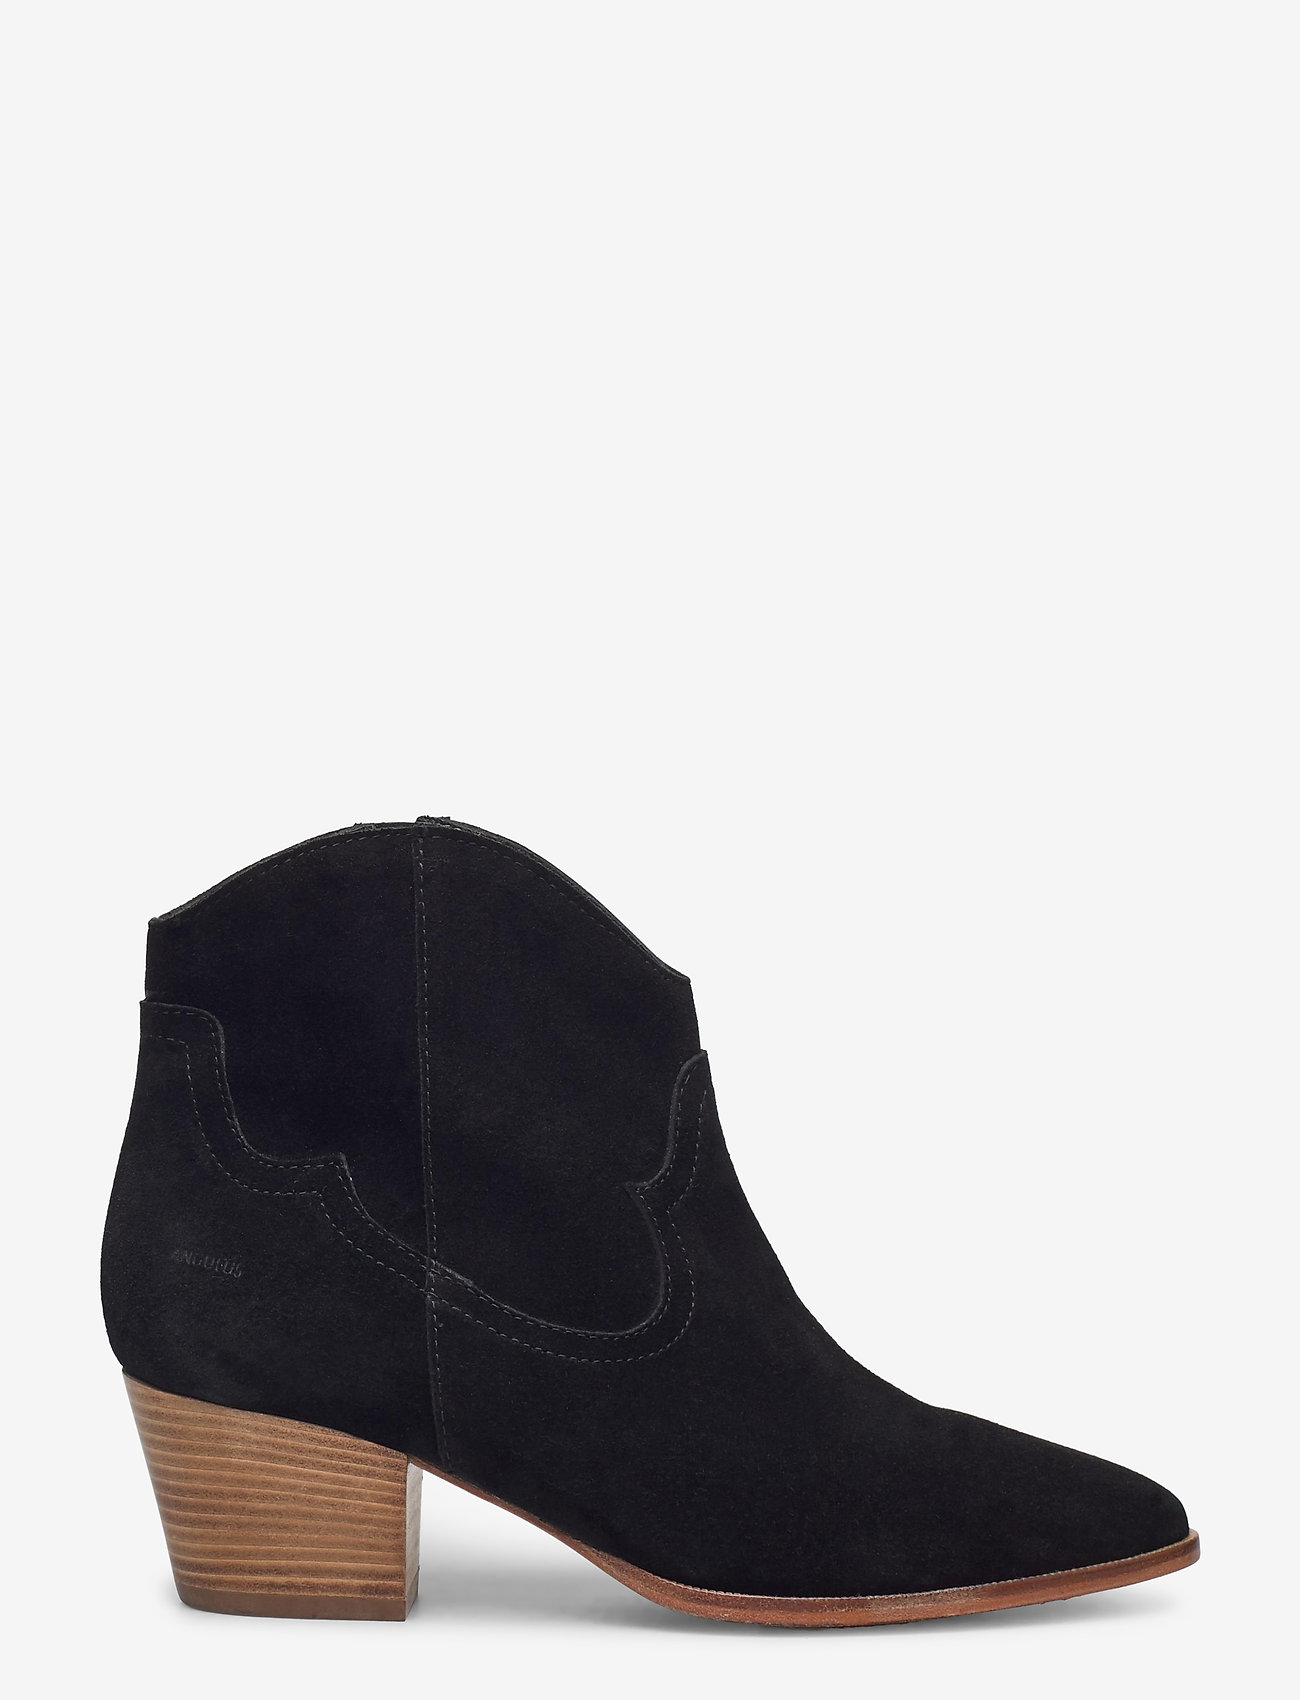 ANGULUS - Booties - Block heel - with elas - stiefeletten mit absatz - 1163 black - 1